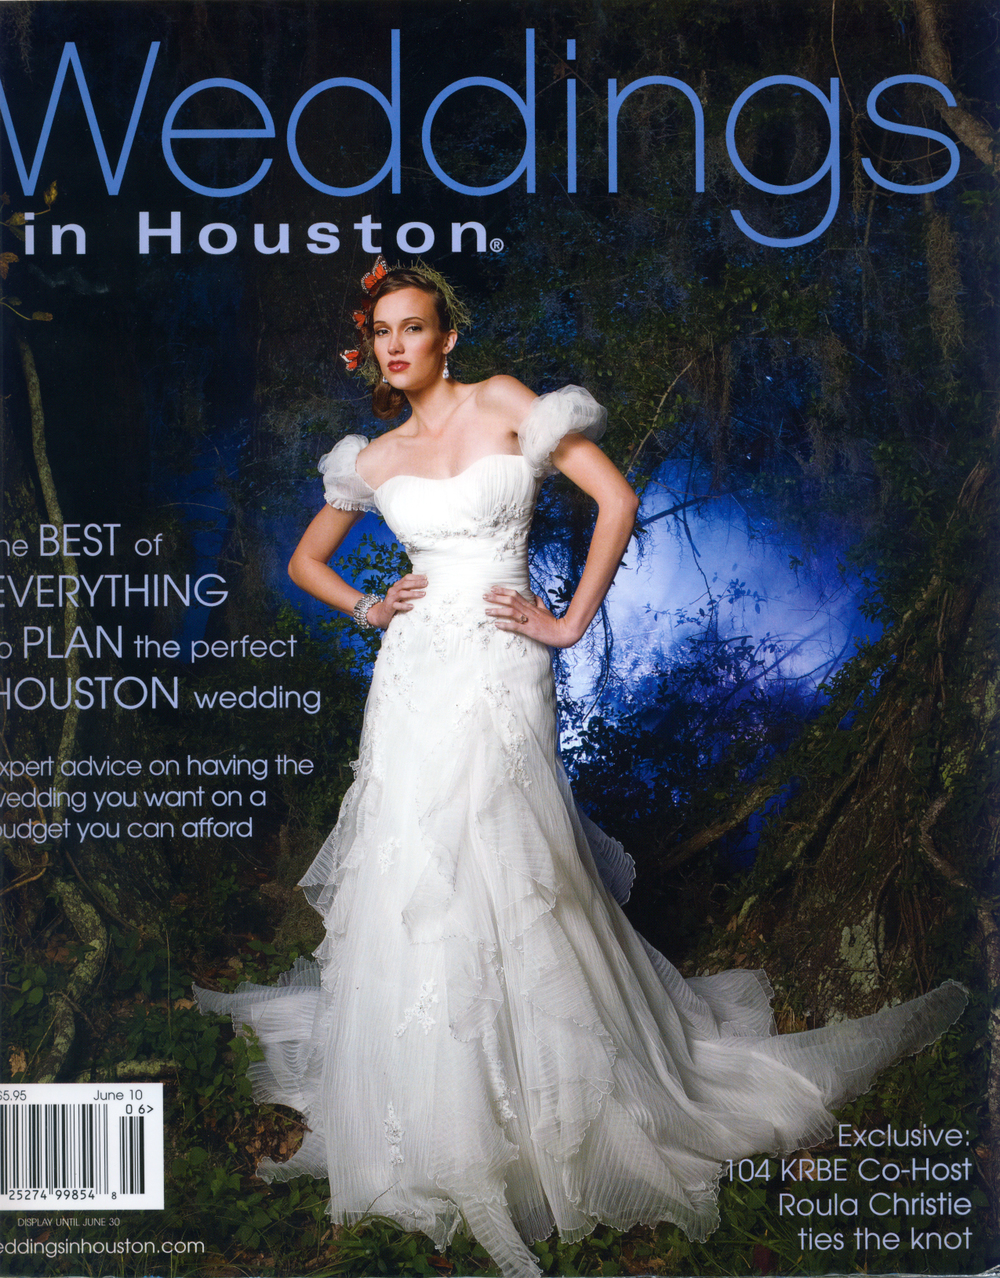 WIHouston201006-1.jpg